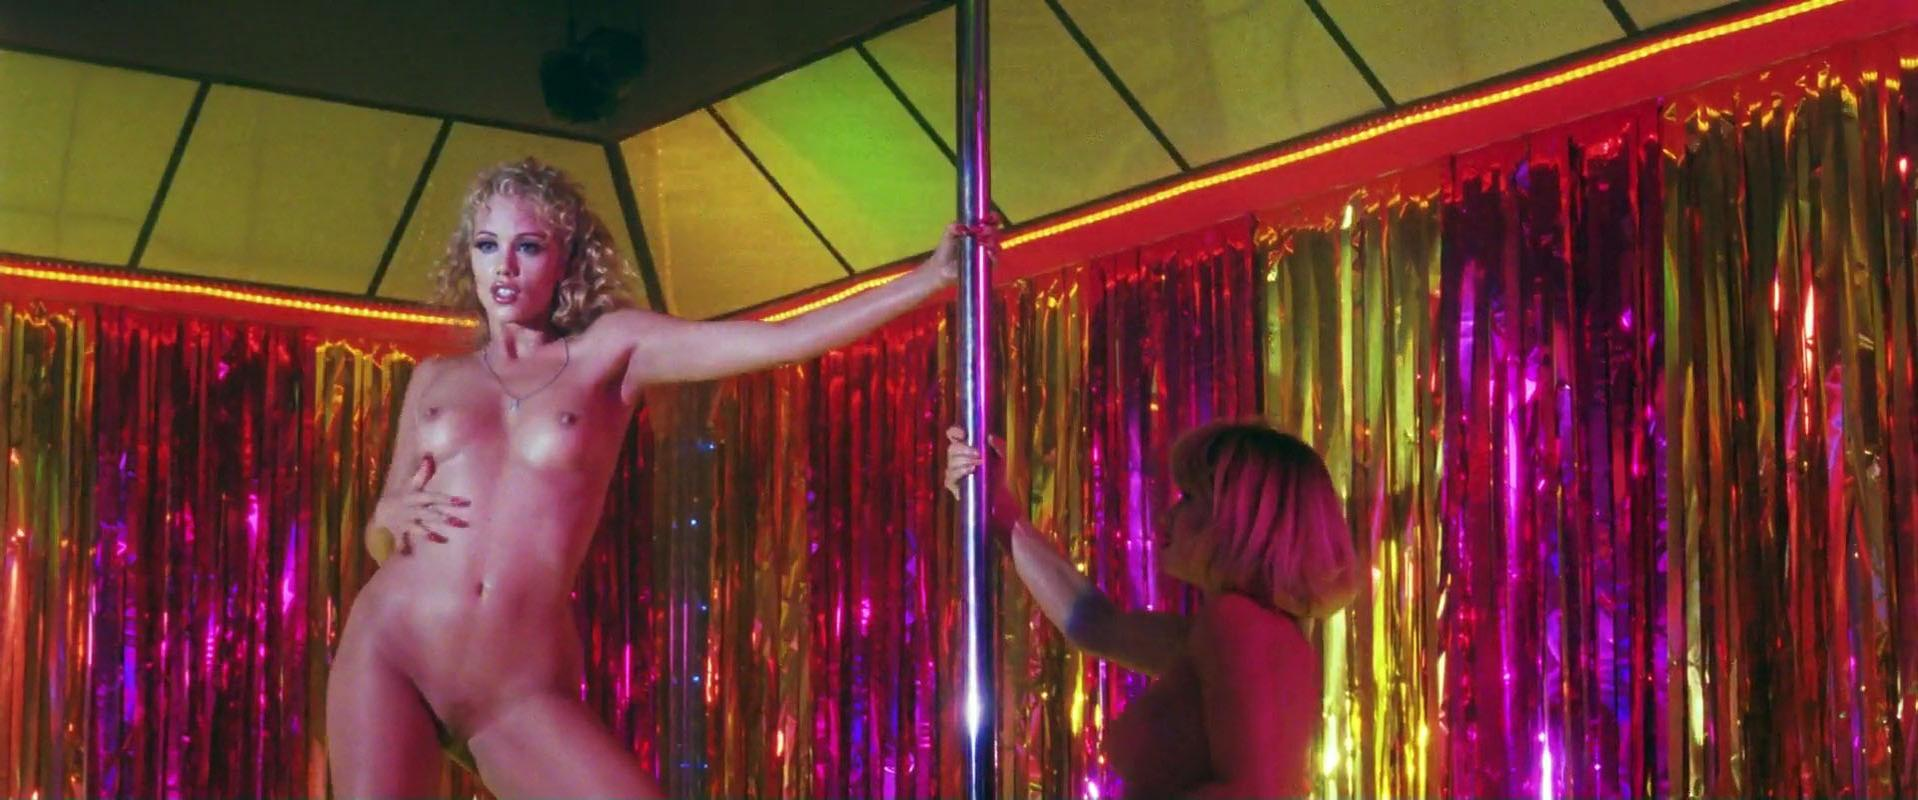 Stage showgirls naked you have correctly